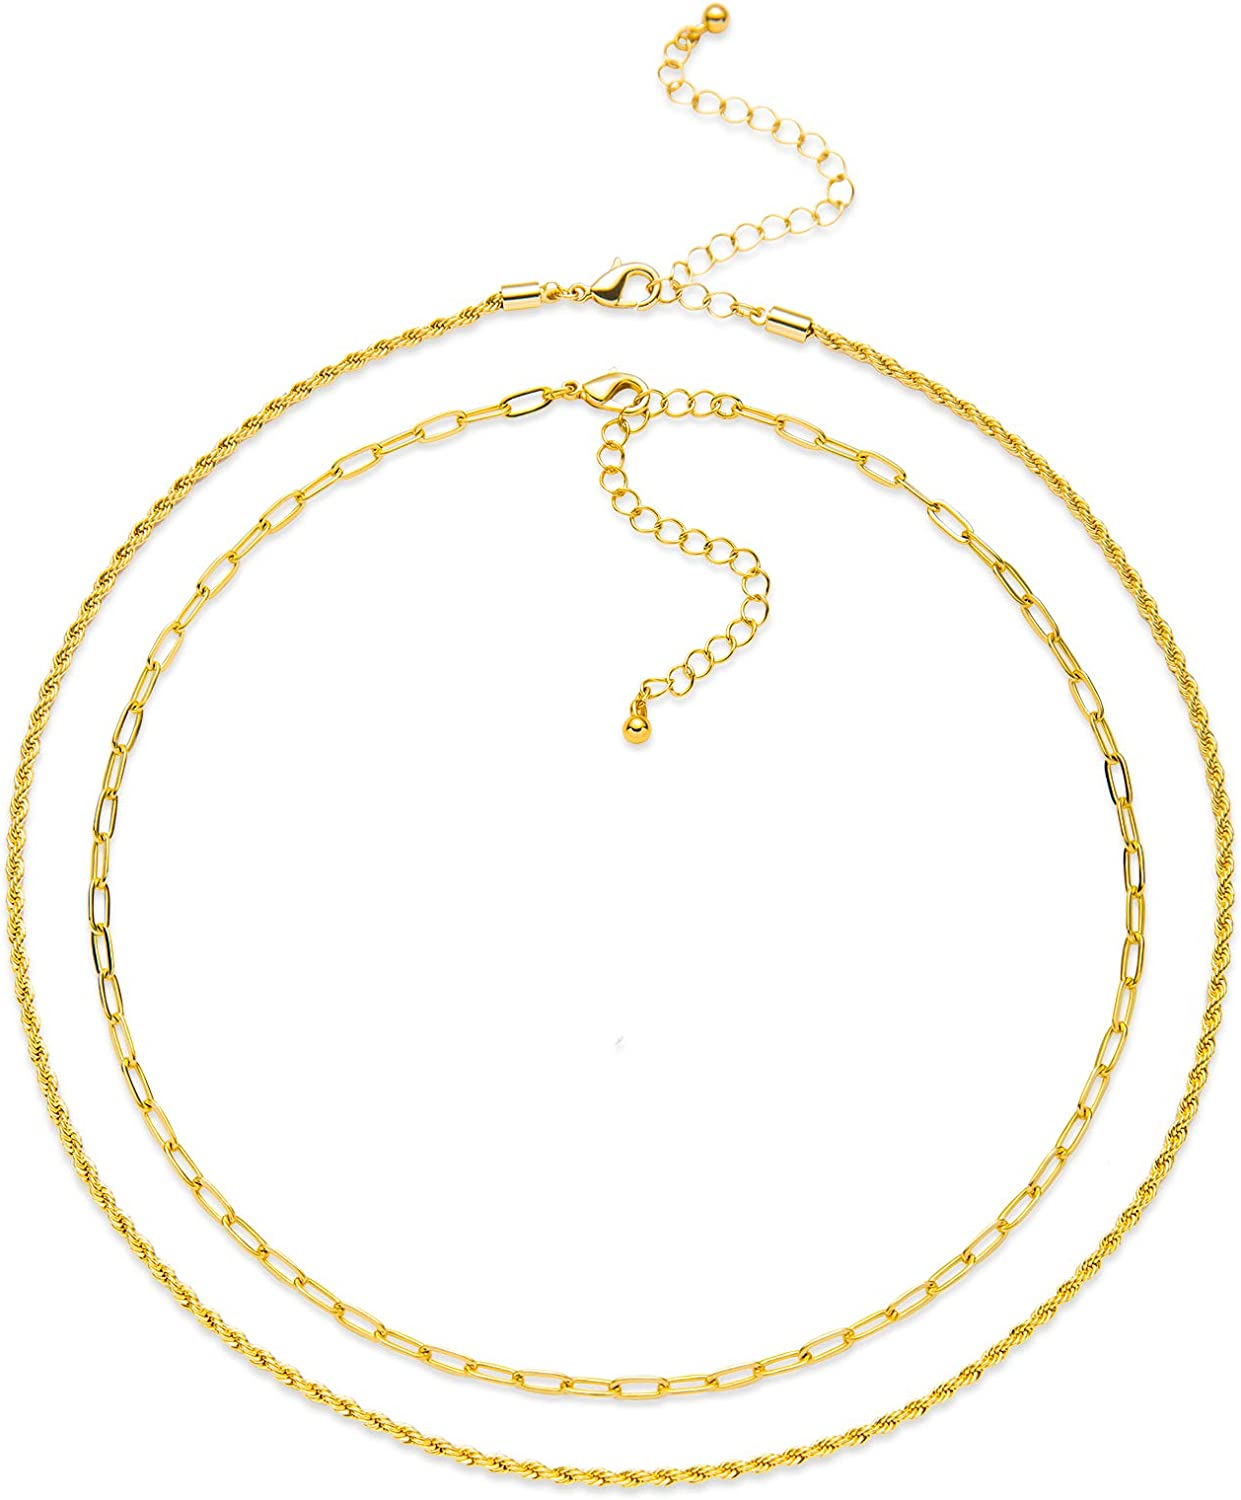 LANE WOODS Gold Chain Set: 14k Gold Plated Layered Dainty Paperclip Rope Chain Necklace Jewelry Gifts for Women Girls Teens